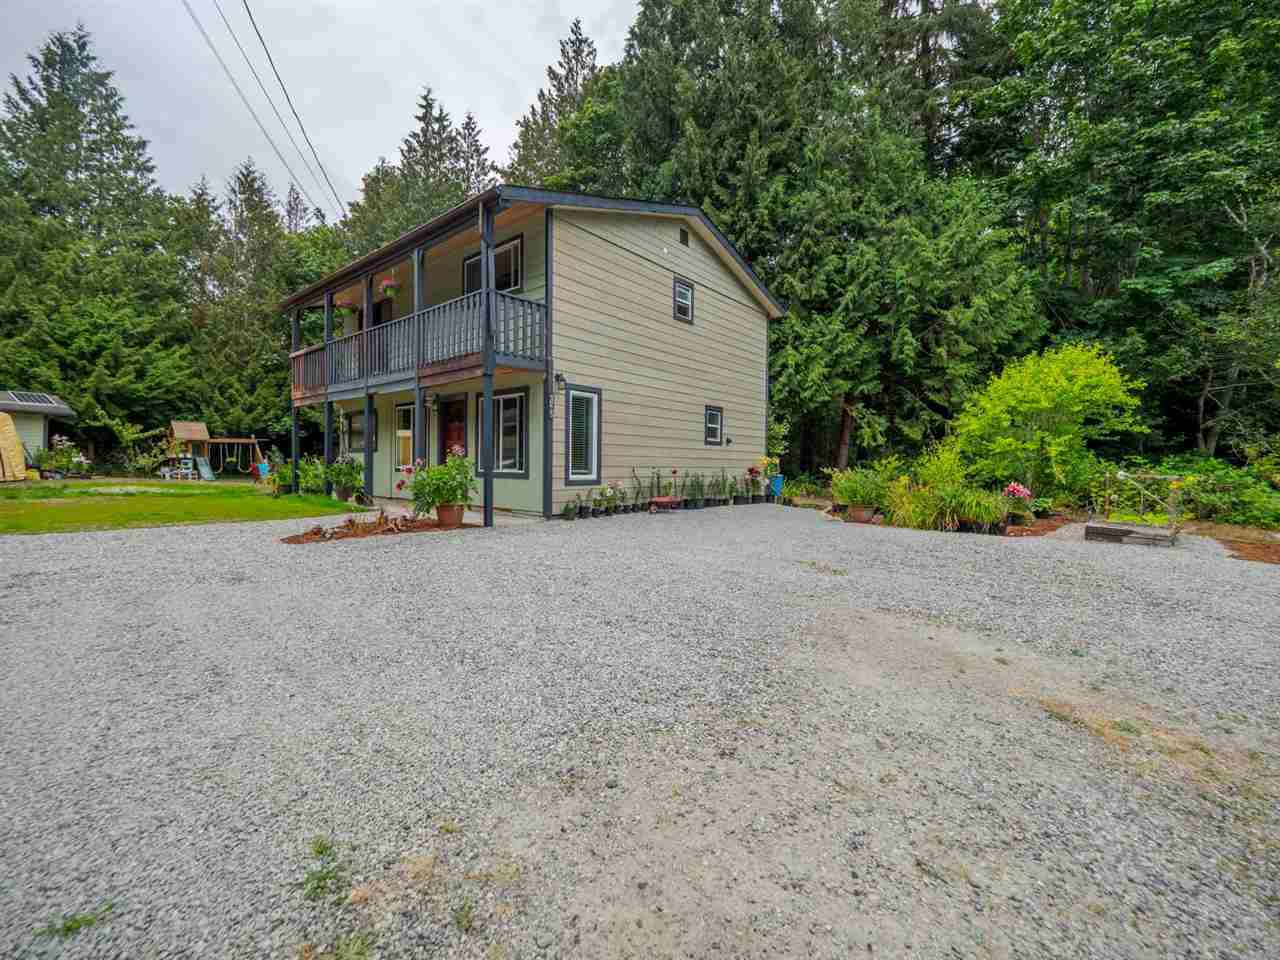 Photo 19: Photos: 1625 BLOWER Road in Sechelt: Sechelt District House for sale (Sunshine Coast)  : MLS®# R2394268